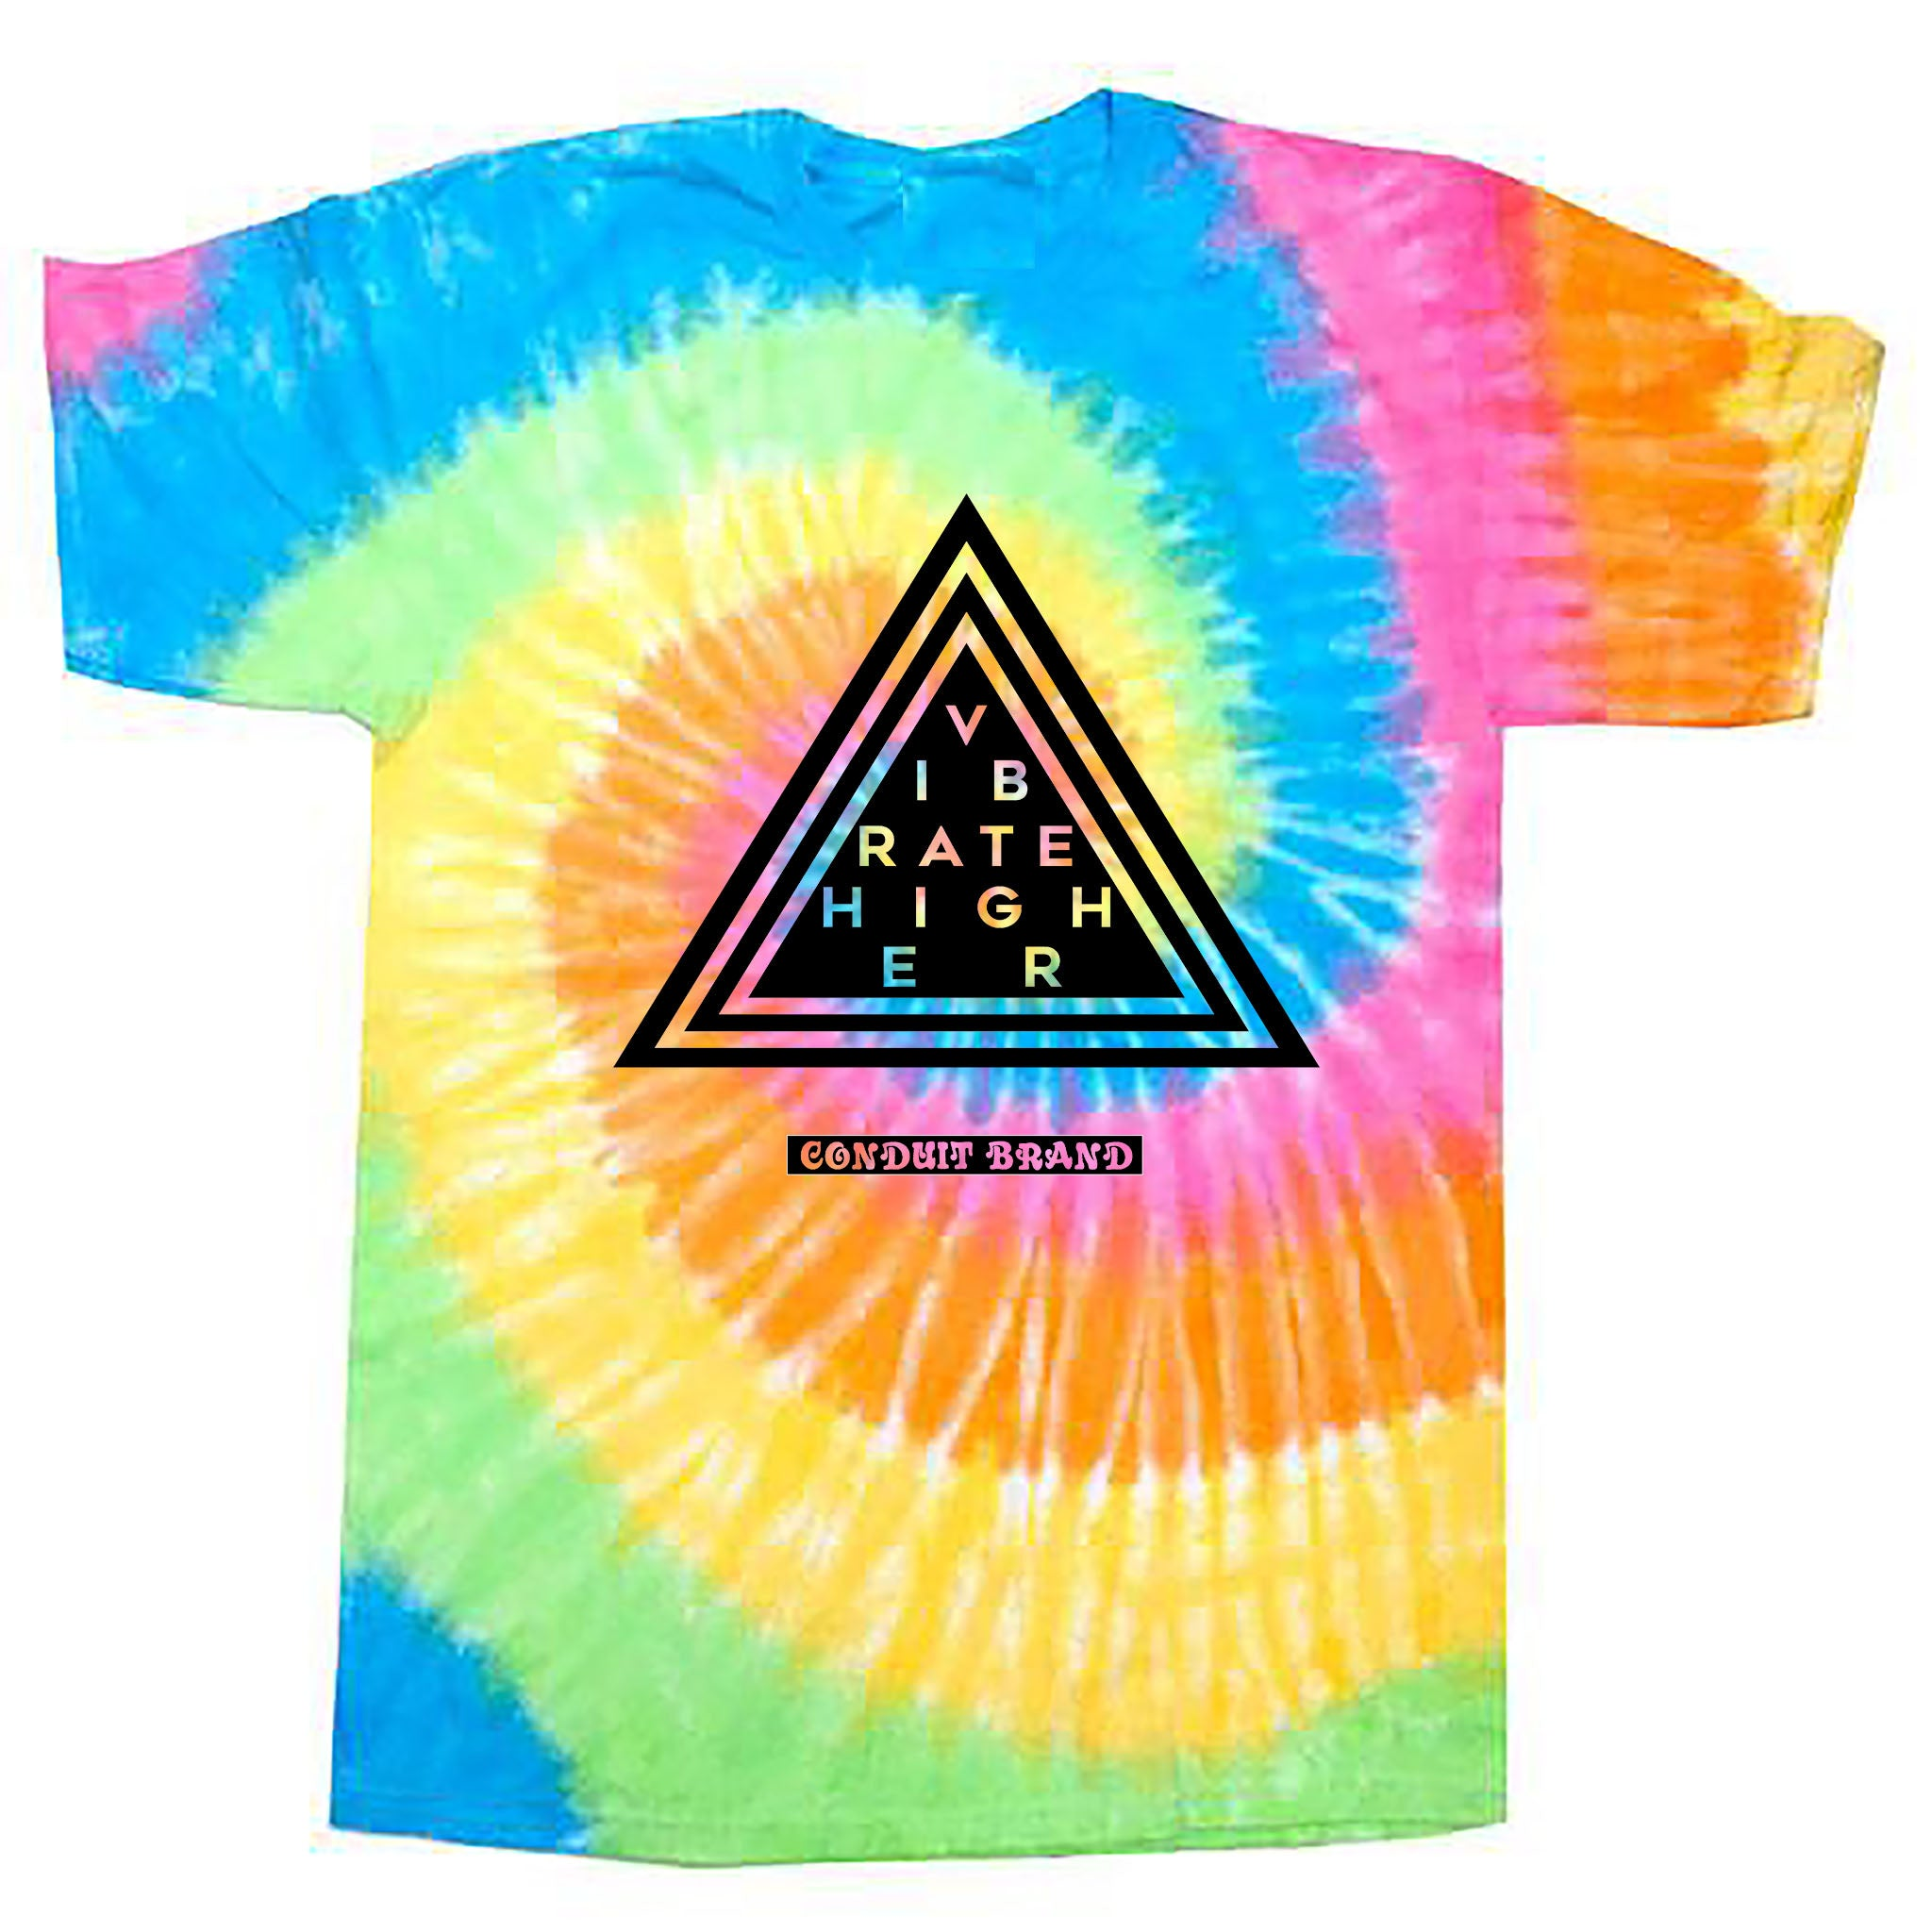 VIBRATE HIGHER TIE DYE - Conduit Brand